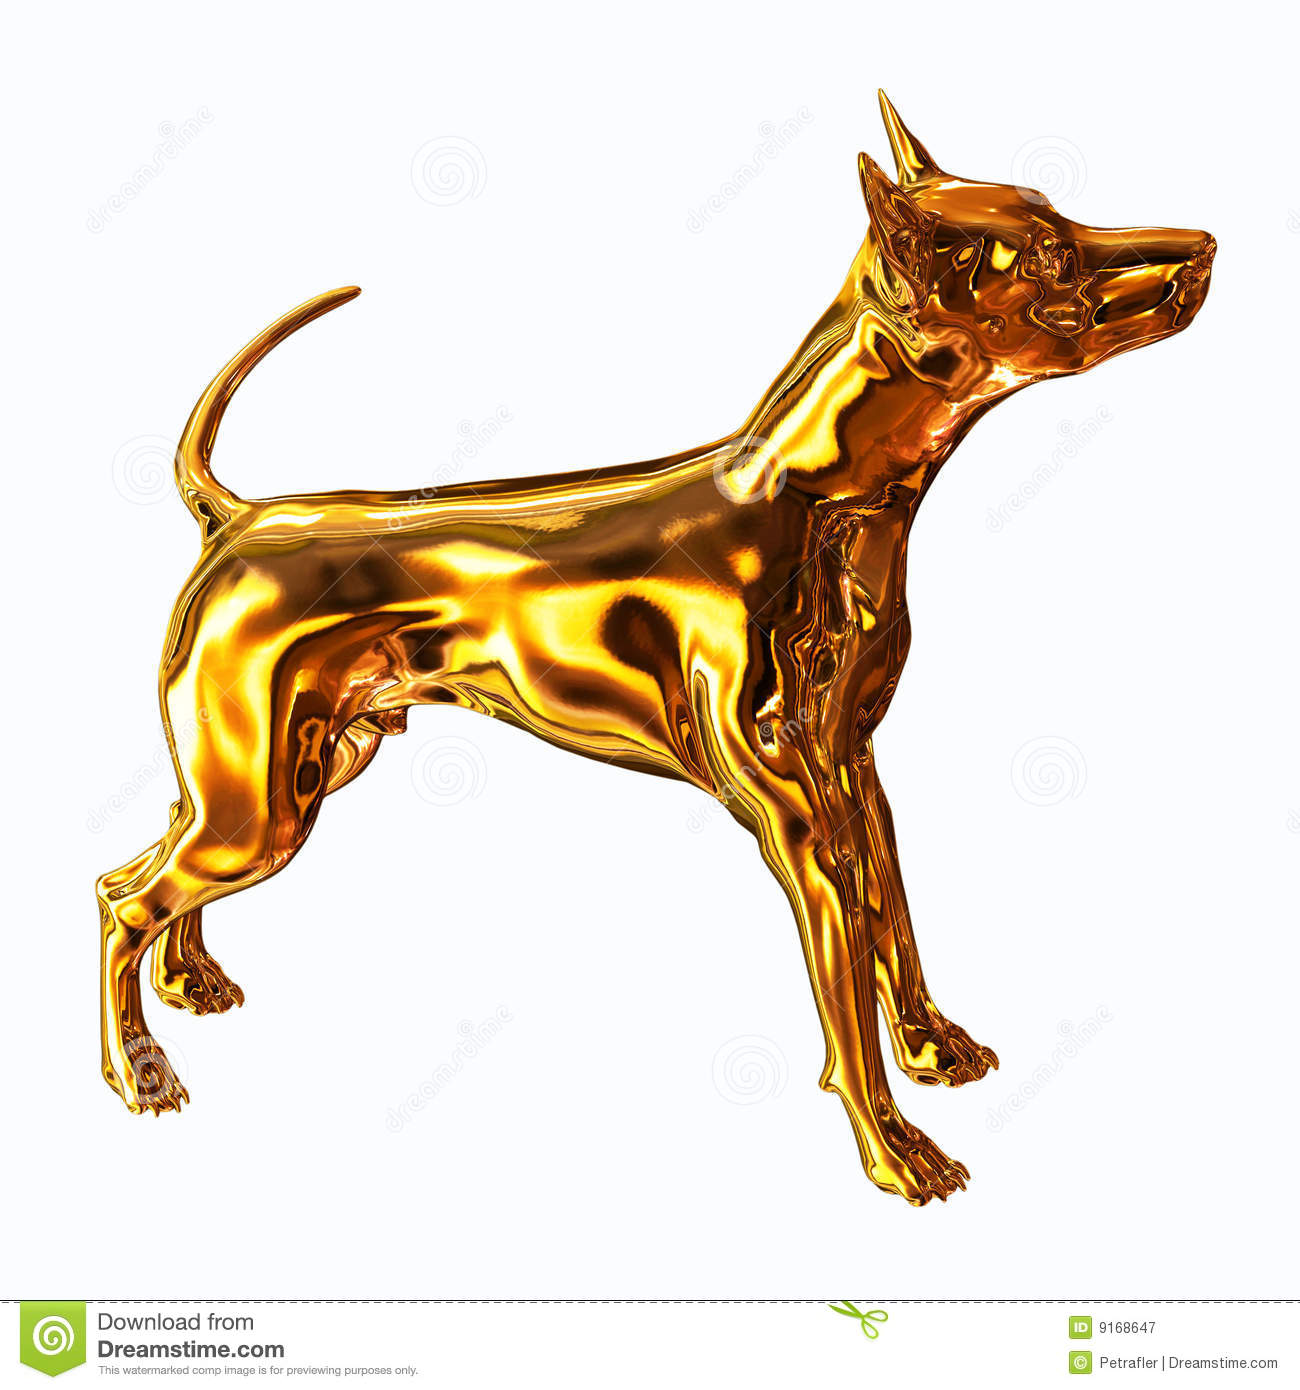 Gold Dog Royalty Free Stock Photography - Image: 9168647